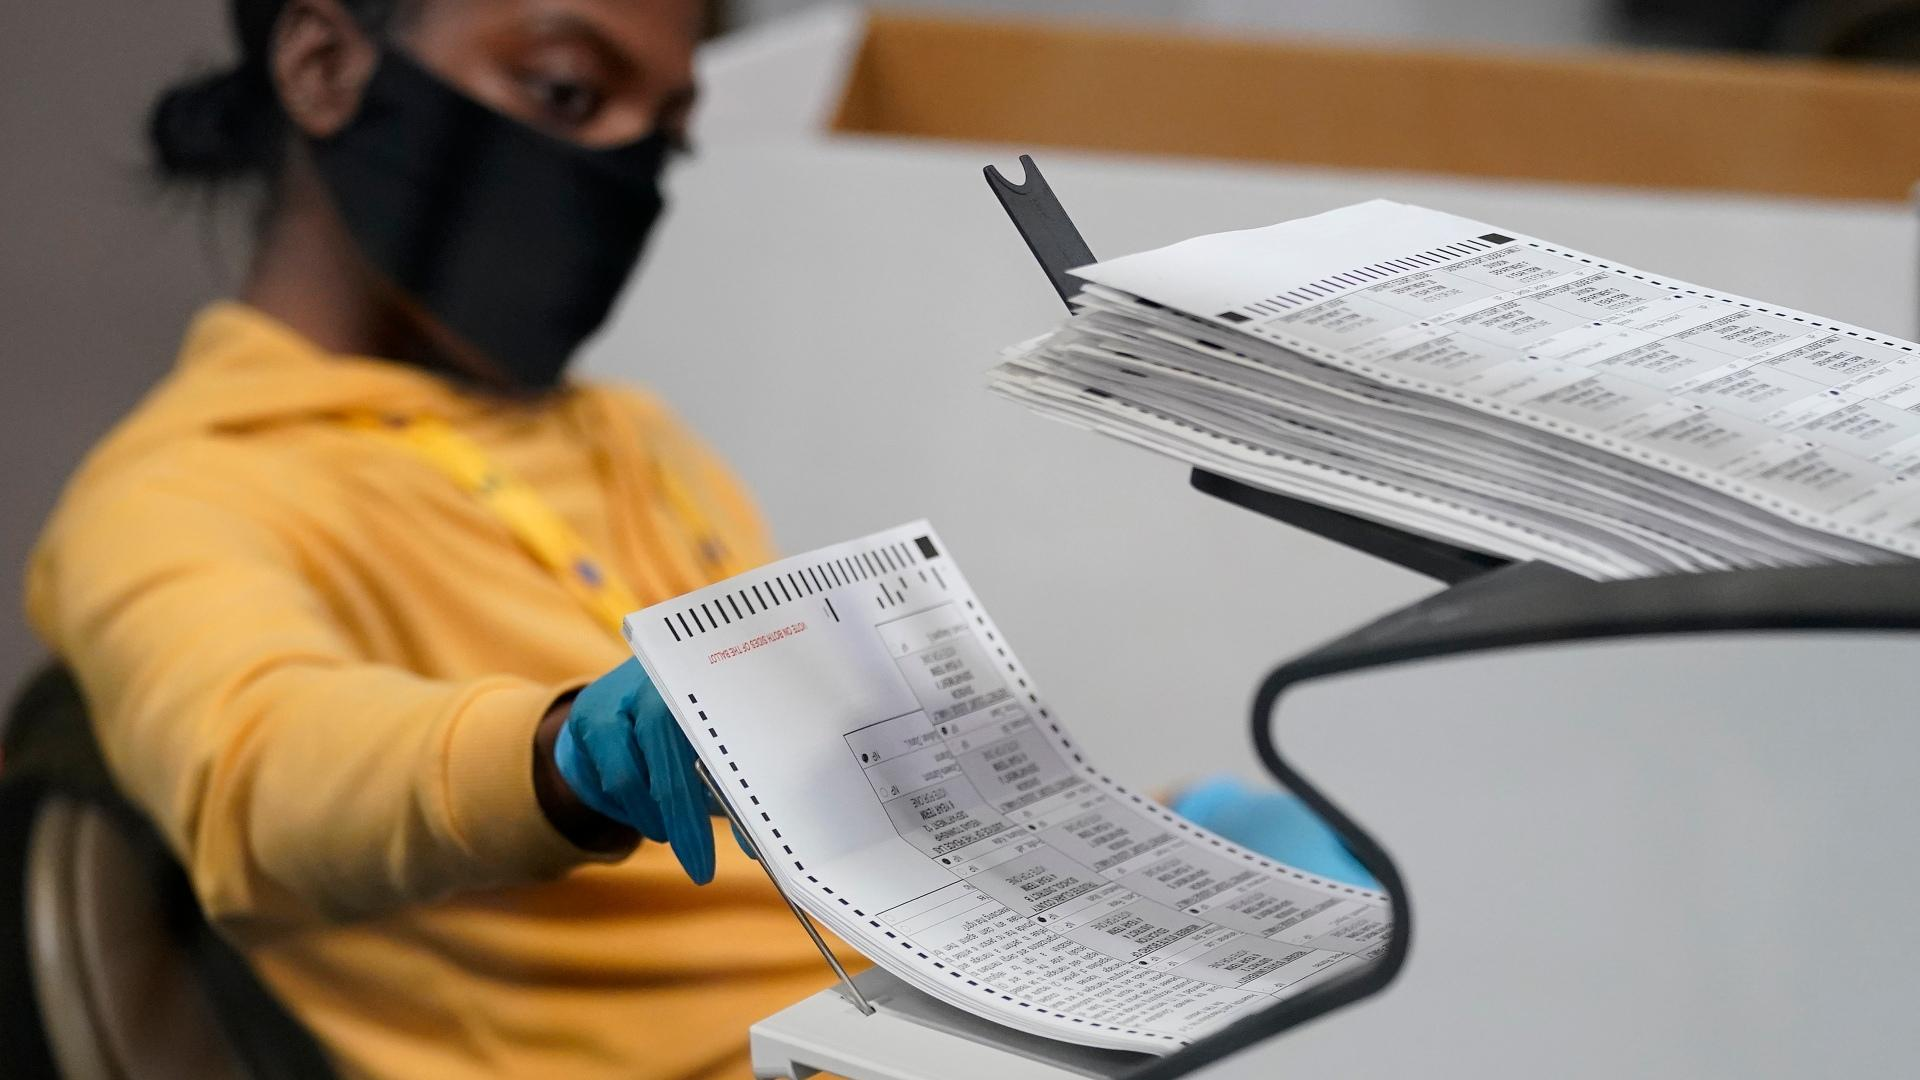 A county election worker scans mail-in ballots at a tabulating area at the Clark County Election Department, Thursday, Nov. 5, 2020, in Las Vegas. (AP Photo / John Locher)